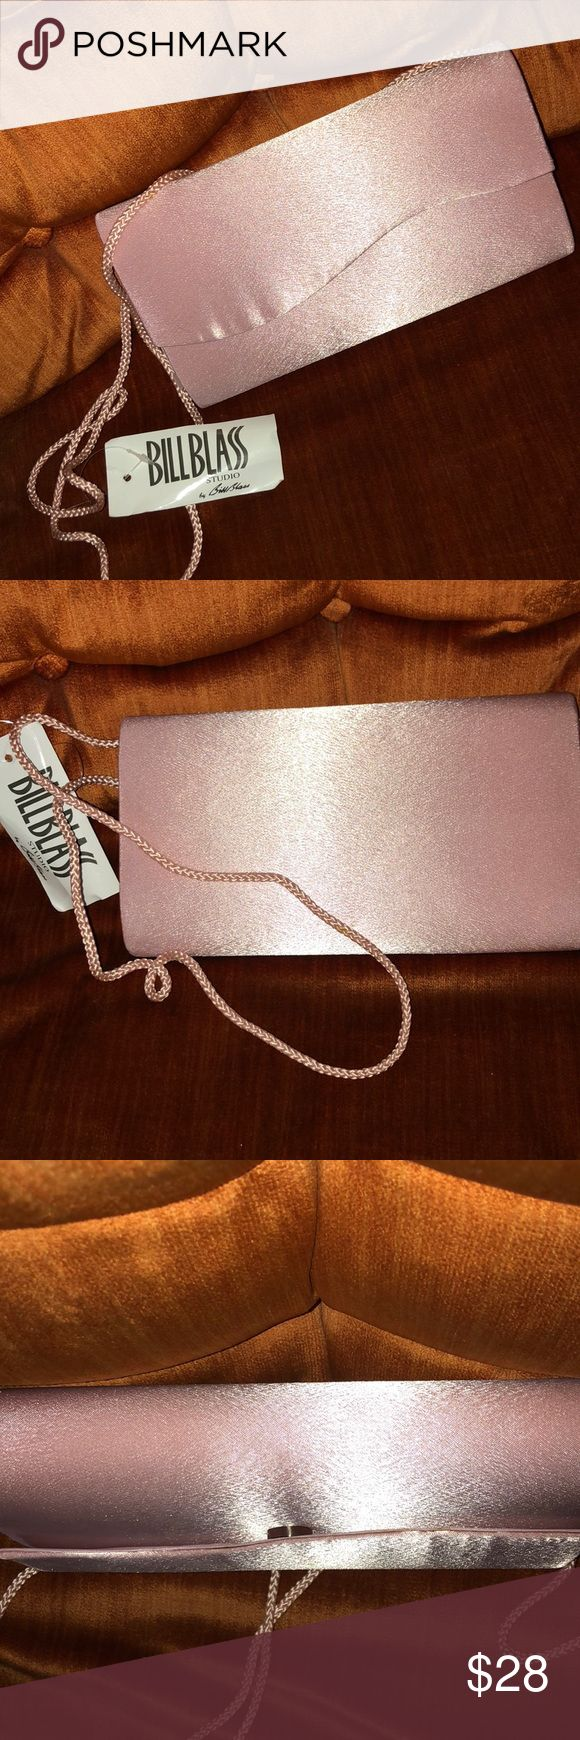 💜PINK CLUTCH PURSE💜 This romantic baby pink clutch bag can also be used as a shoulder bag with a pink cord  handle or leave it tucked in to go without. This vintage bag has been created from a beautiful satin there are no flaws other than a slight amount of puckering on the front which is not noticeable when worn. It has a silver magnet closure under front flap. Perfect bag for a wedding or prom. Very lightweight please see pics! Bill Blass Bags Clutches & Wristlets